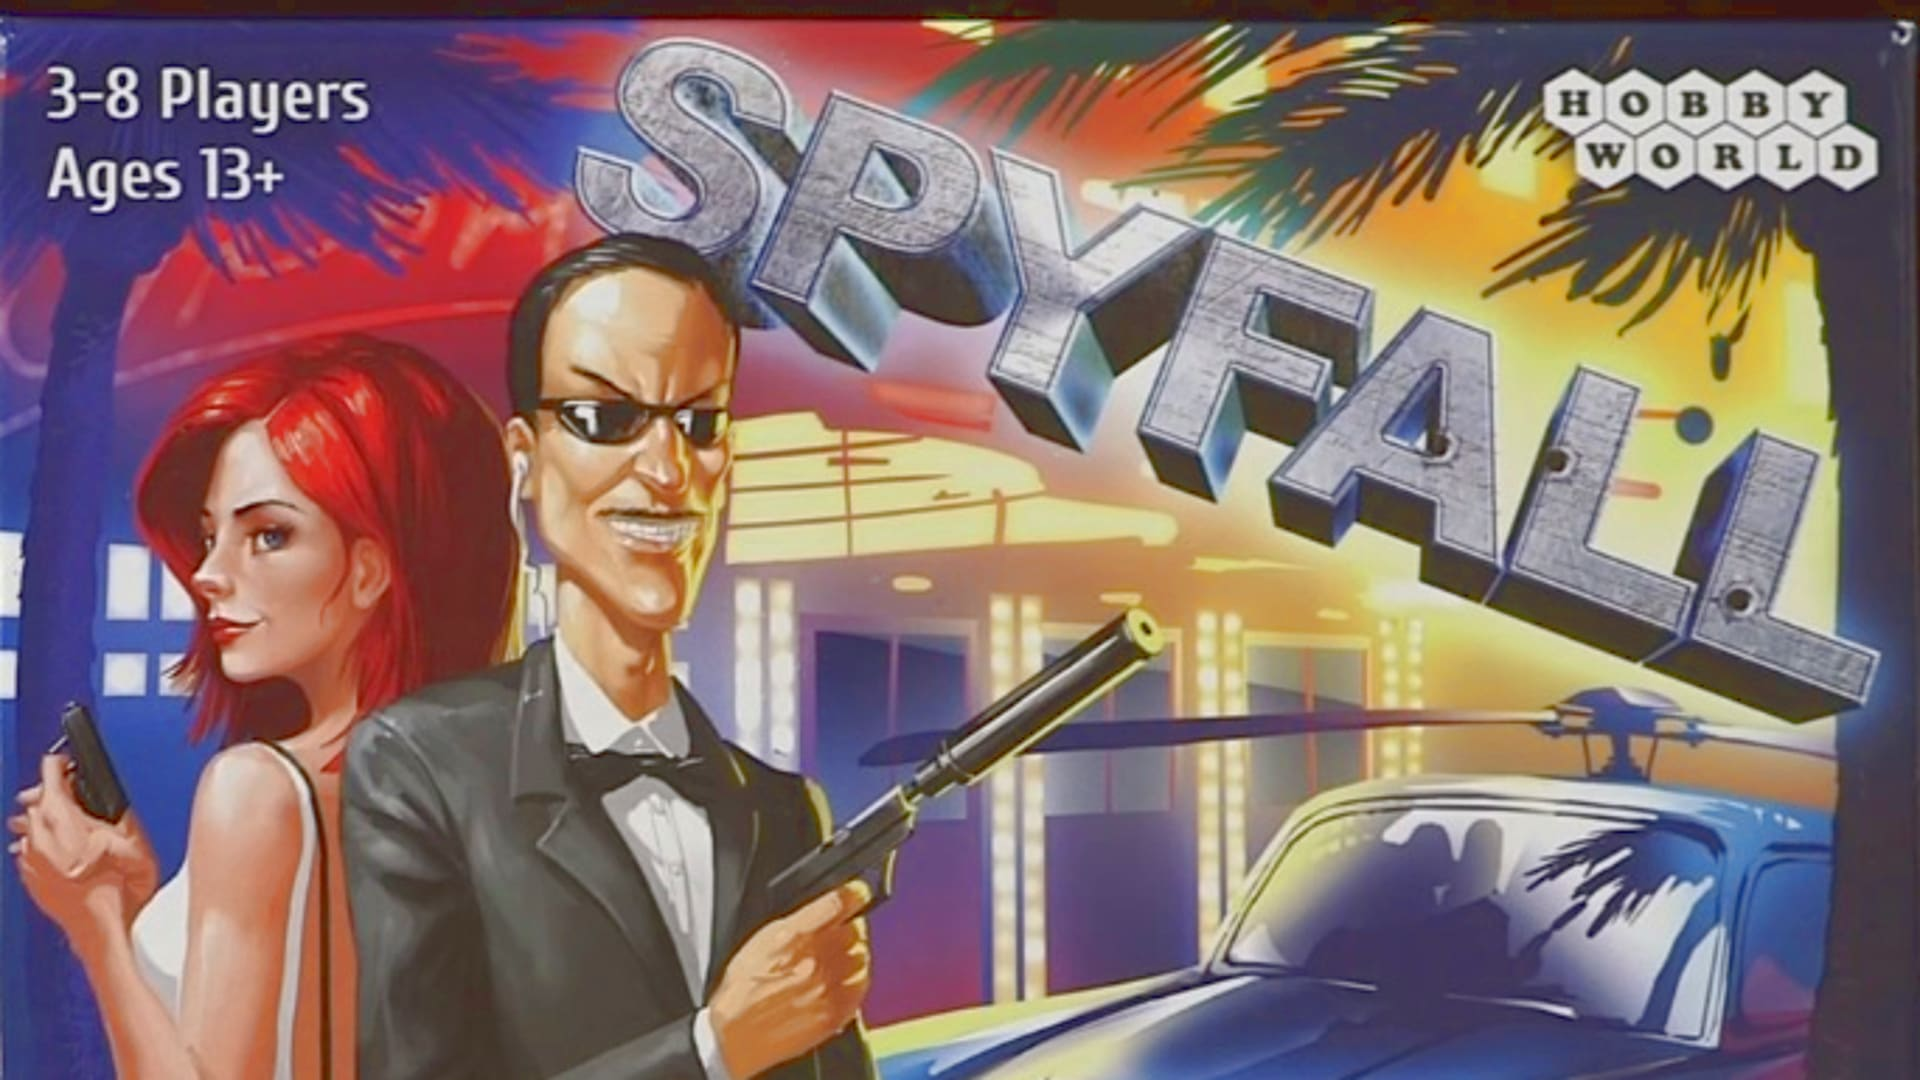 Spyfall Game Rules and How to Play Guide